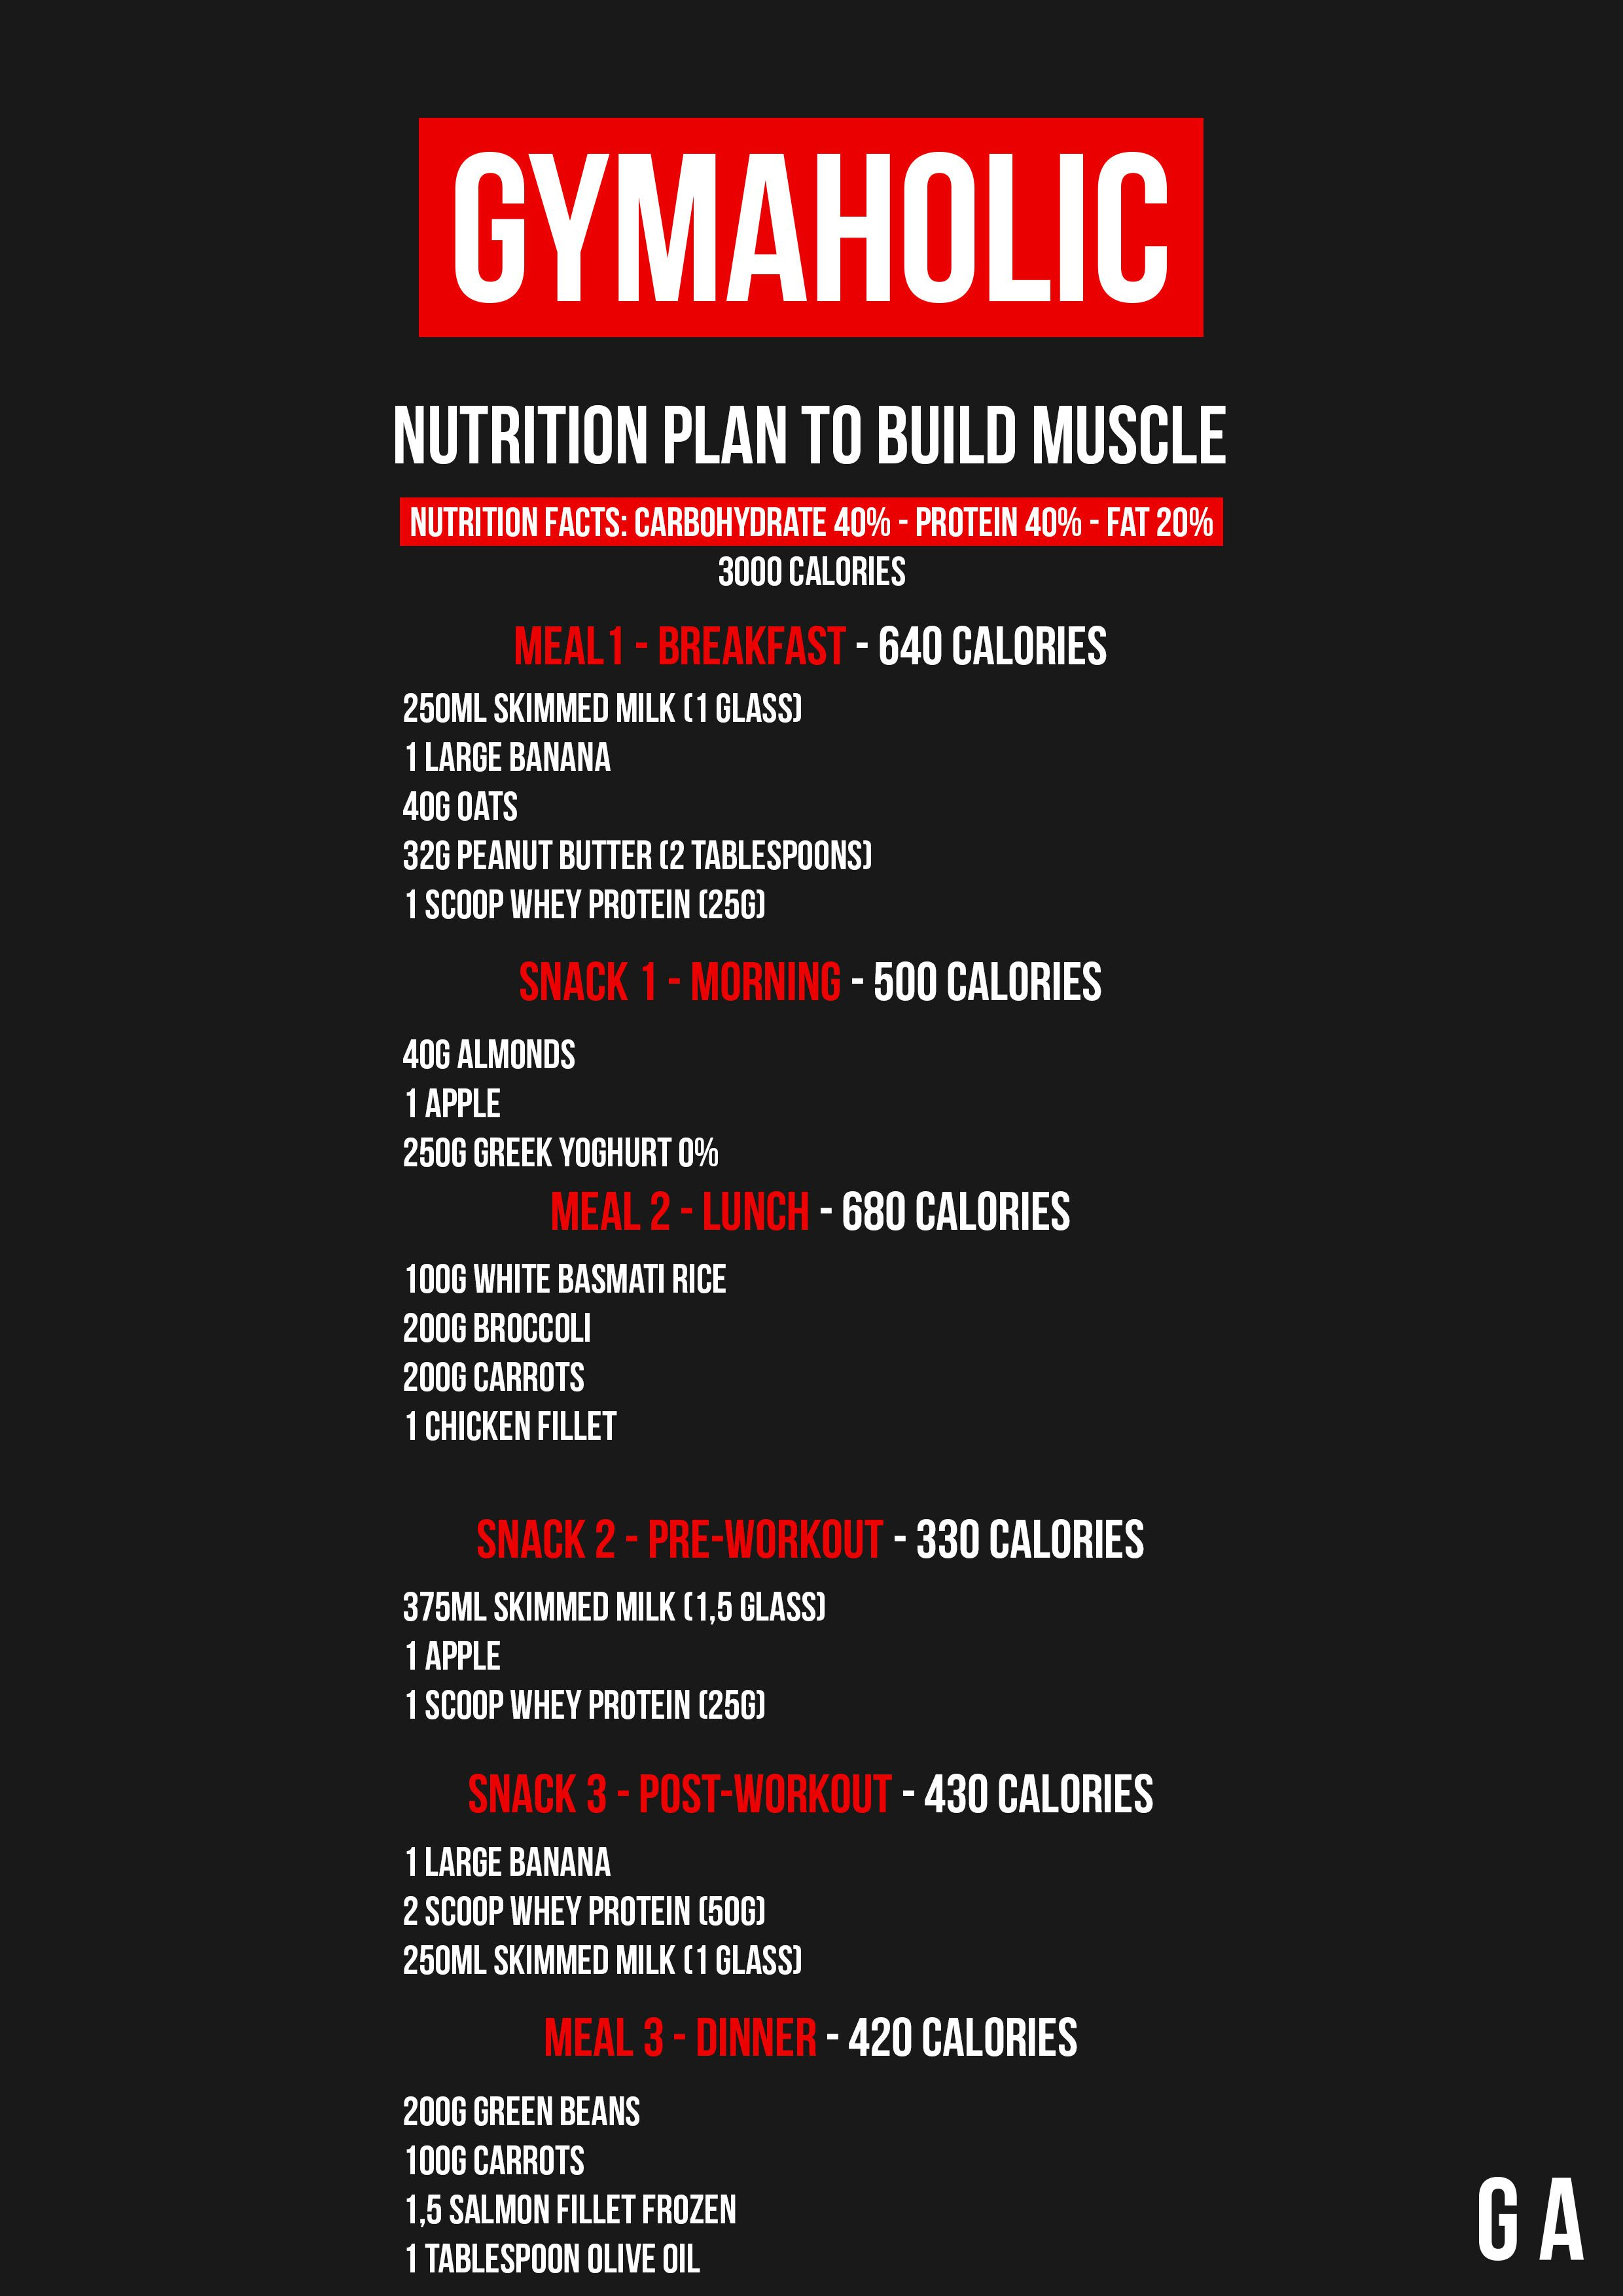 Fast Workout Plan To Build Muscle Mass